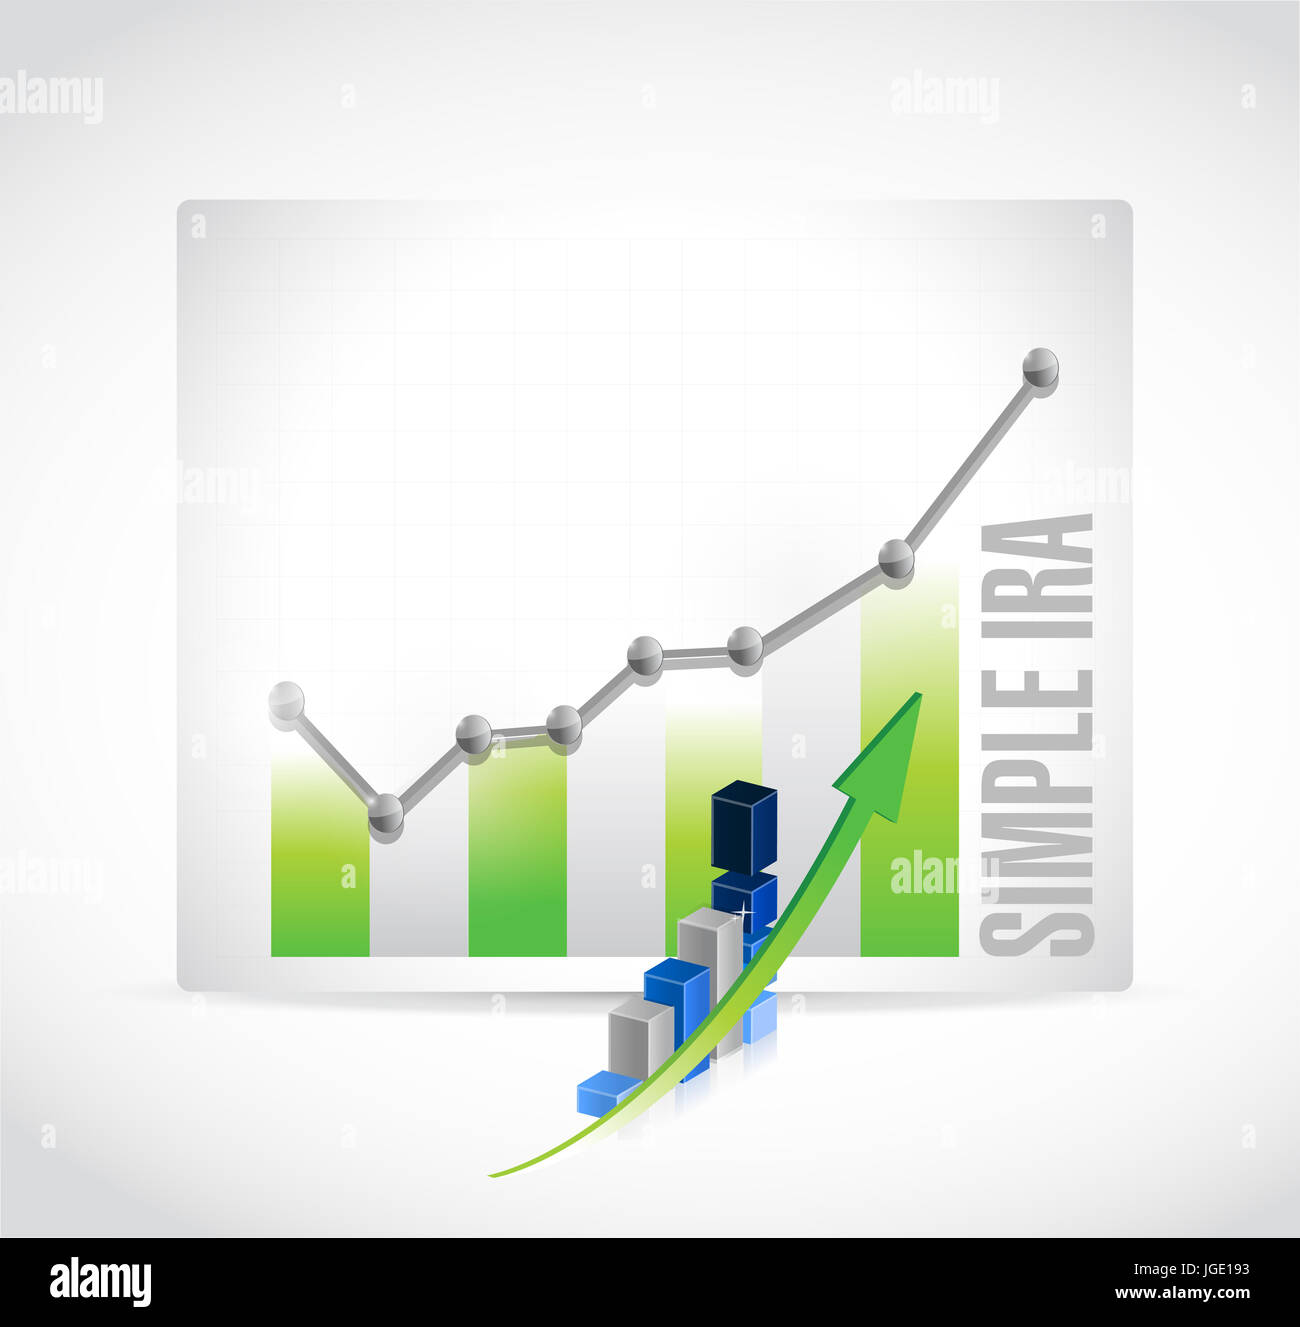 simple ira business graph illustration design icon isolated over white Stock Photo